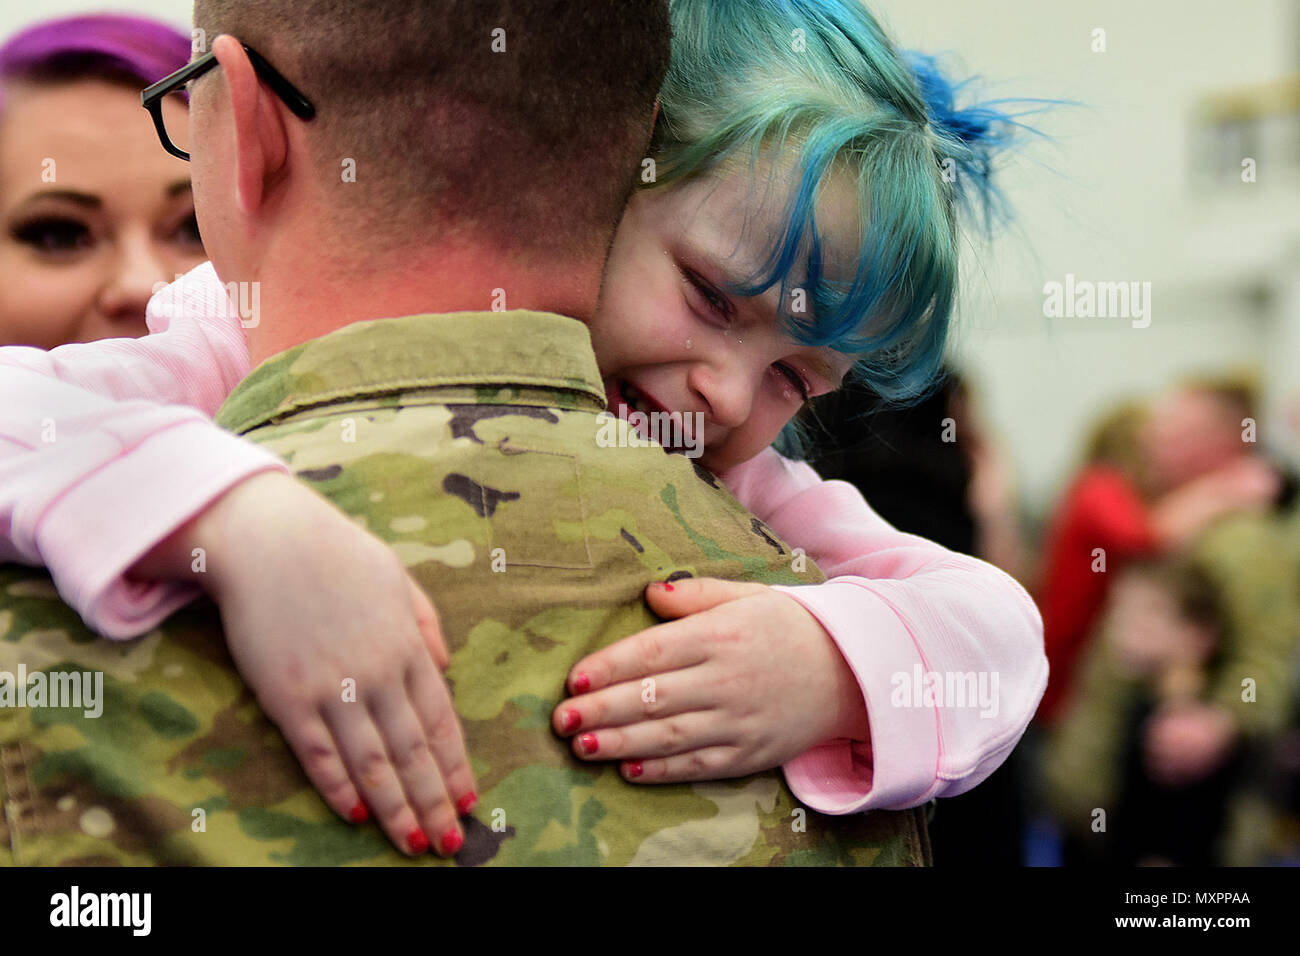 Six-year-old Rose Lowe greets her father, Sgt. Jonathan Lowe of the 109th Transportation Company, with a tearful hug Dec. 1 at Joint Base Elmendorf-Richardson's Buckner Physical Fitness Center. The 109th, part of U.S. Army Alaska's 17th Combat Sustainment Support Battalion, deployed to Kuwait in March in support of Operation Inherent Resolve. (Army photo/John Pennell) - Stock Image